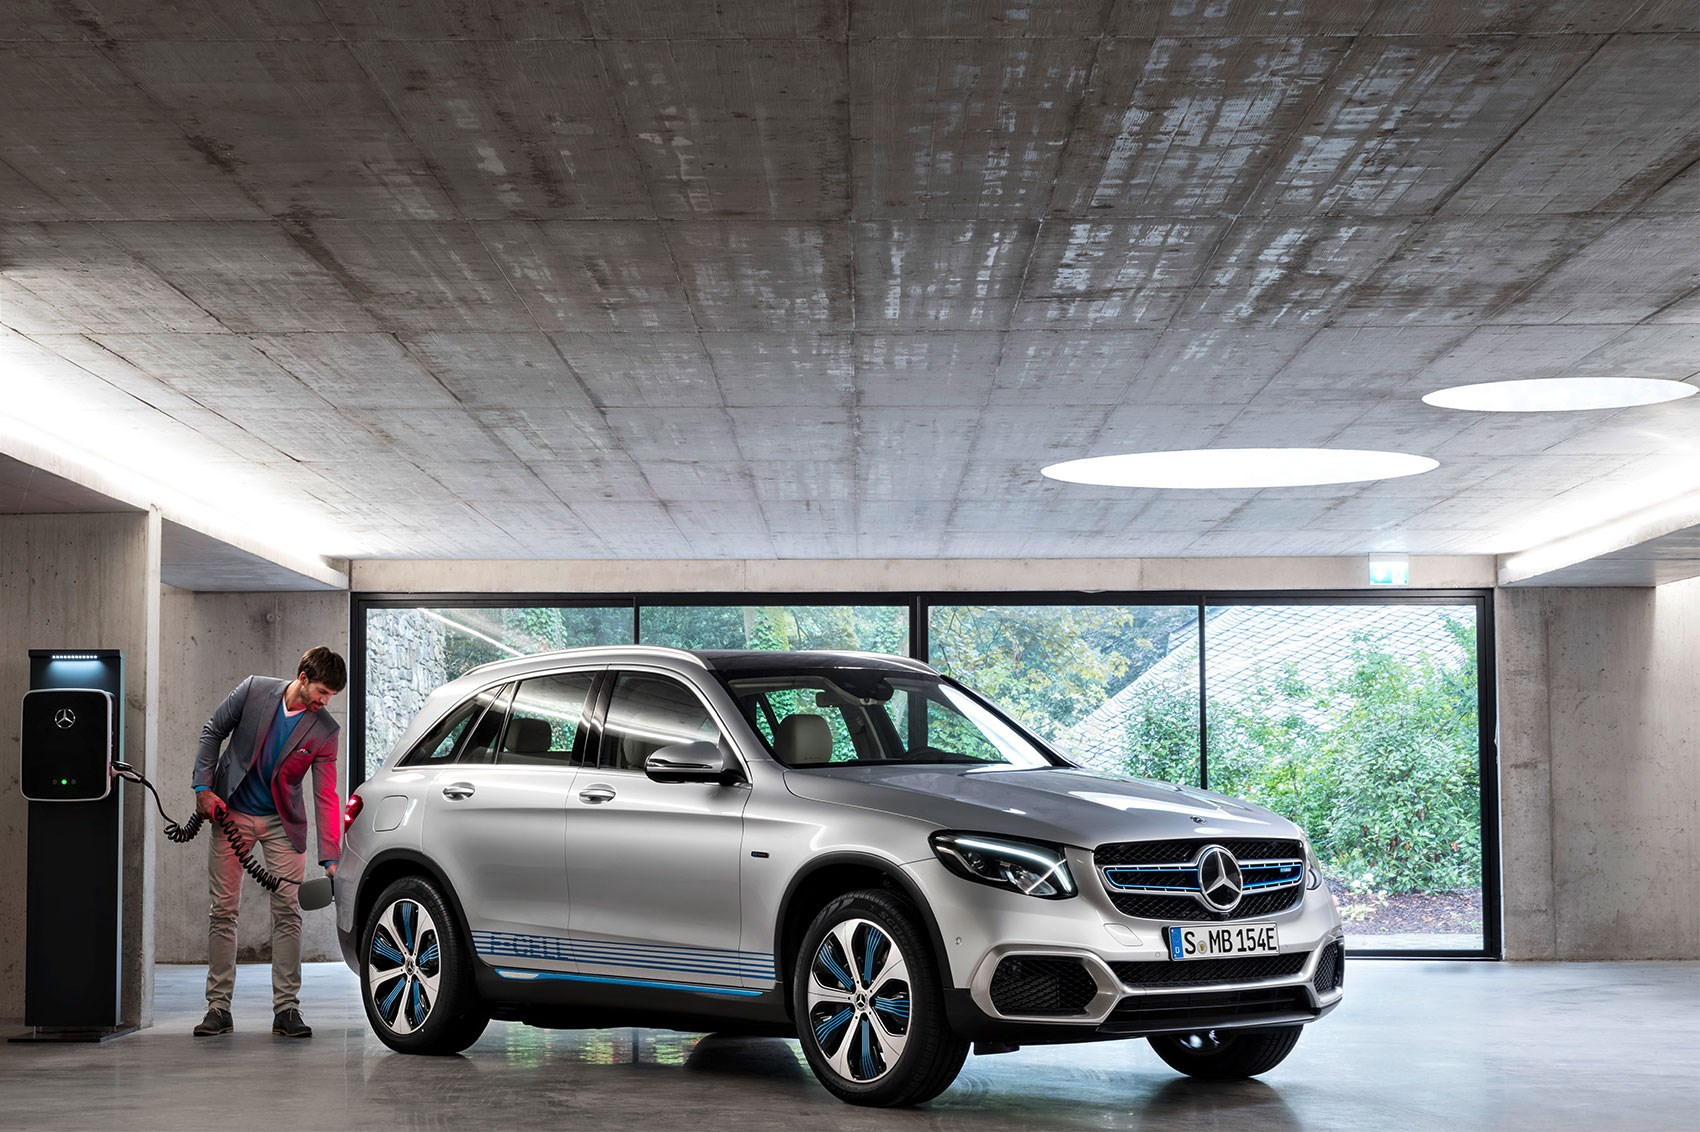 Mercedes Glc F Cell Front View